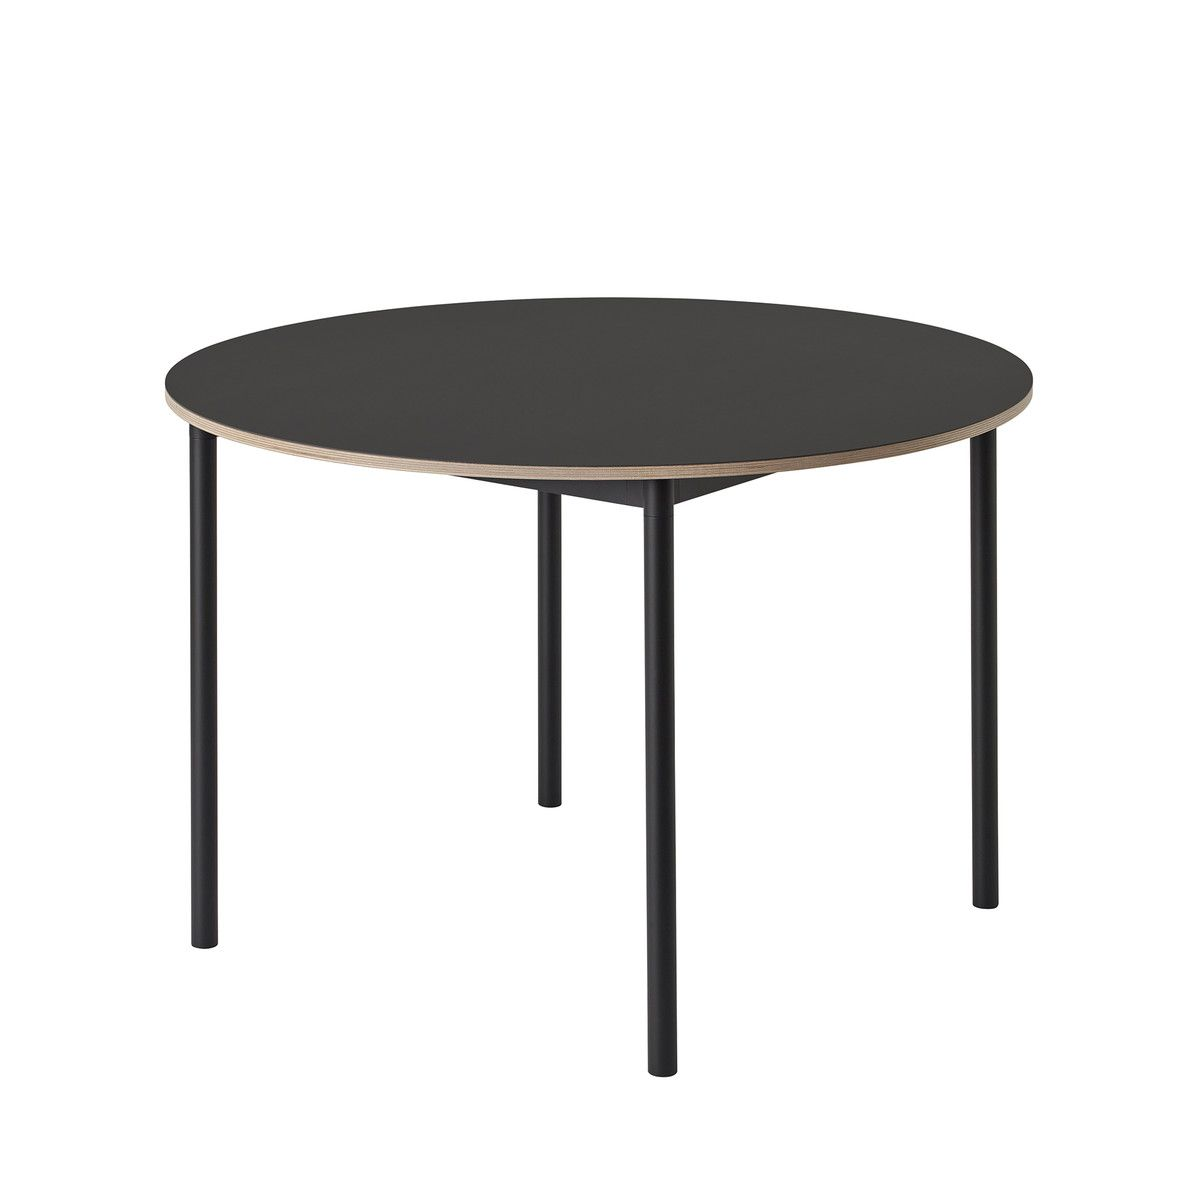 Muuto Base Table O 110 Cm Laminat Mit Sperrholzkante Weiss In